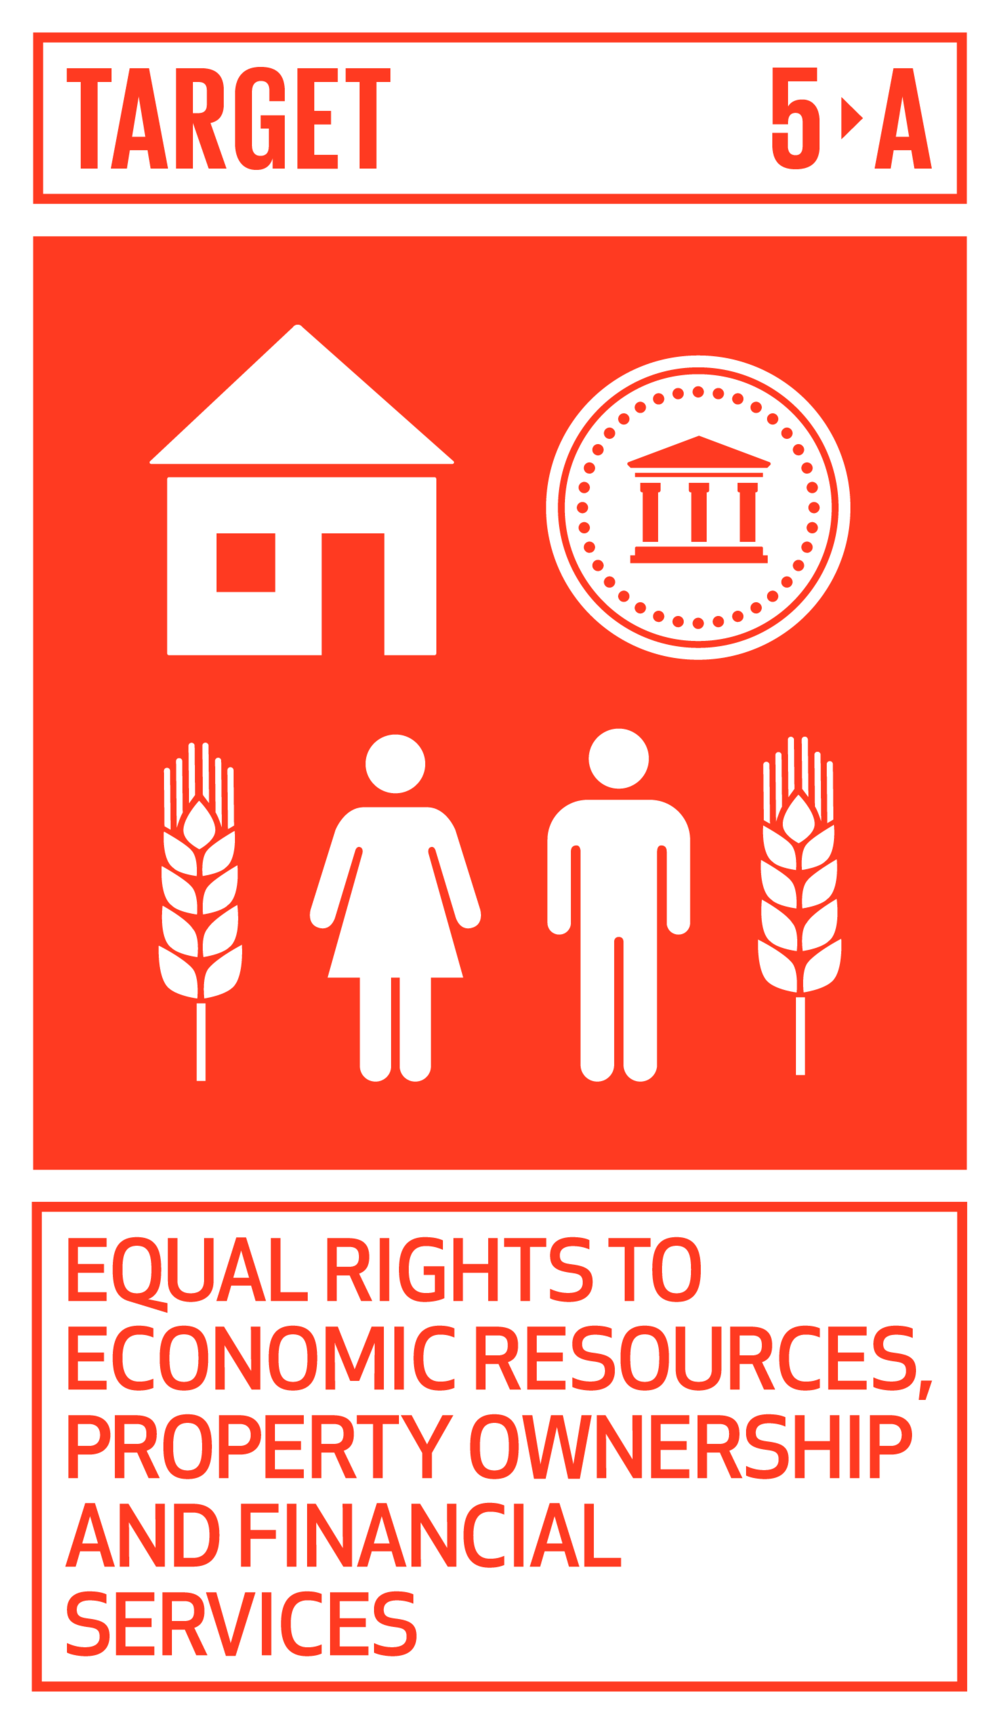 Ensure universal access to sexual and reproductive health and reproductive rights as agreed in accordance with the Programme of Action of the International Conference on Population and Development and the Beijing Platform for Action and the outcome documents of their review conferences.   INDICATORS    5.a.1  (a) Proportion of total agricultural population with ownership or secure rights over agricultural land, by sex; and (b) share of women among owners or rights-bearers of agricultural land, by type of tenure   5.a.2  Proportion of countries where the legal framework (including customary law) guarantees women's equal rights to land ownership and/or control